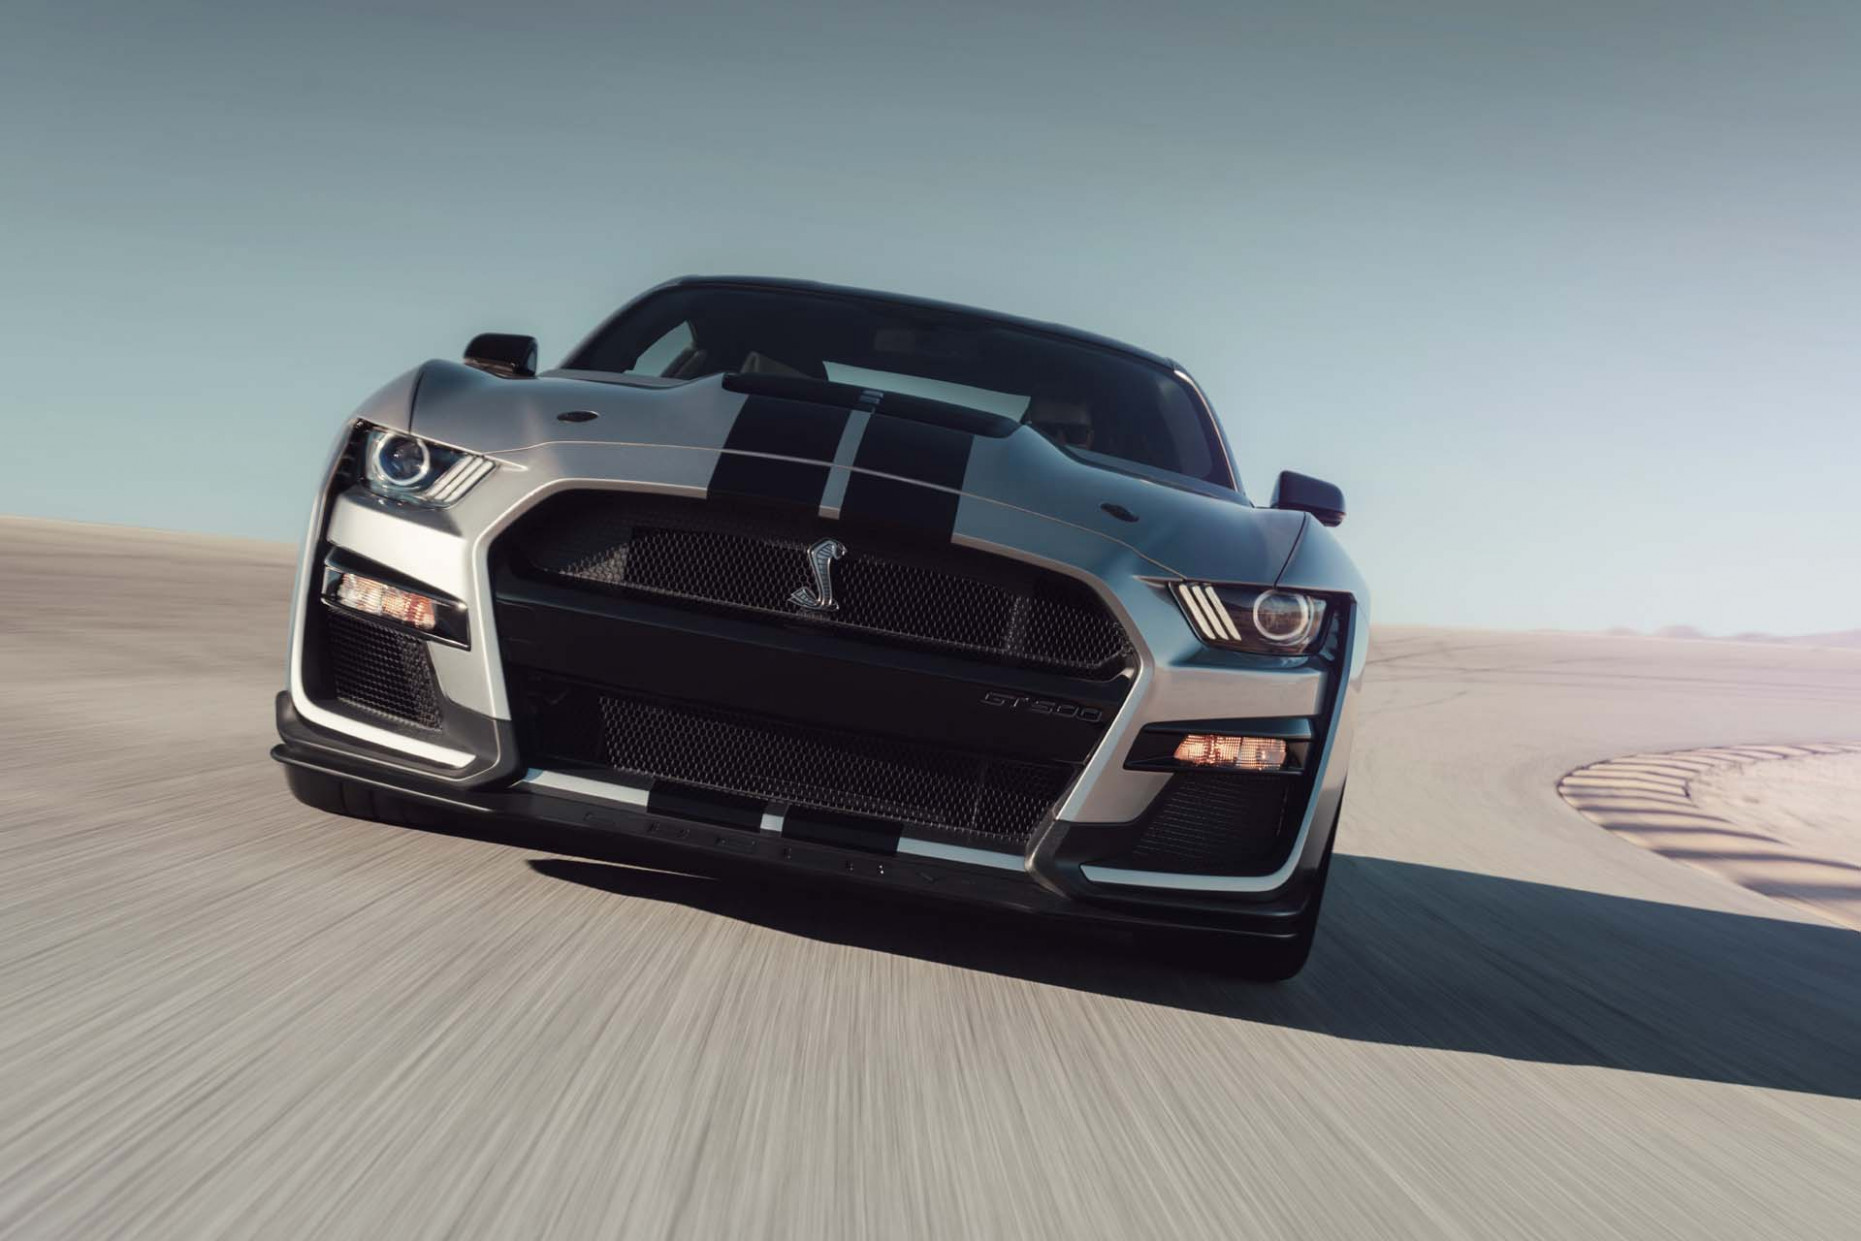 Ford has no interest in setting record lap times with 6 Mustang ..